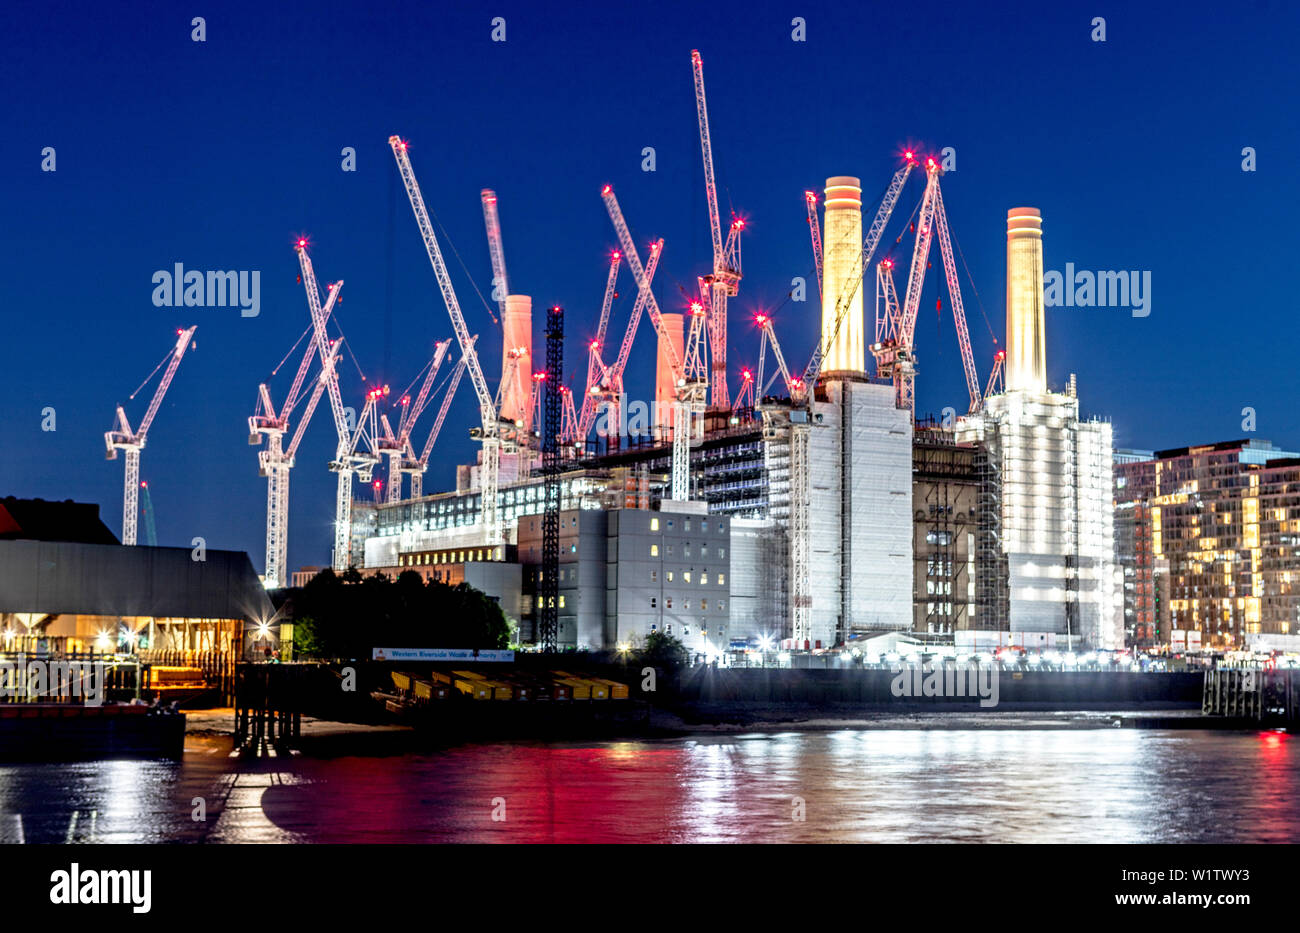 Battersea Power Station Development at Night London UK - Stock Image